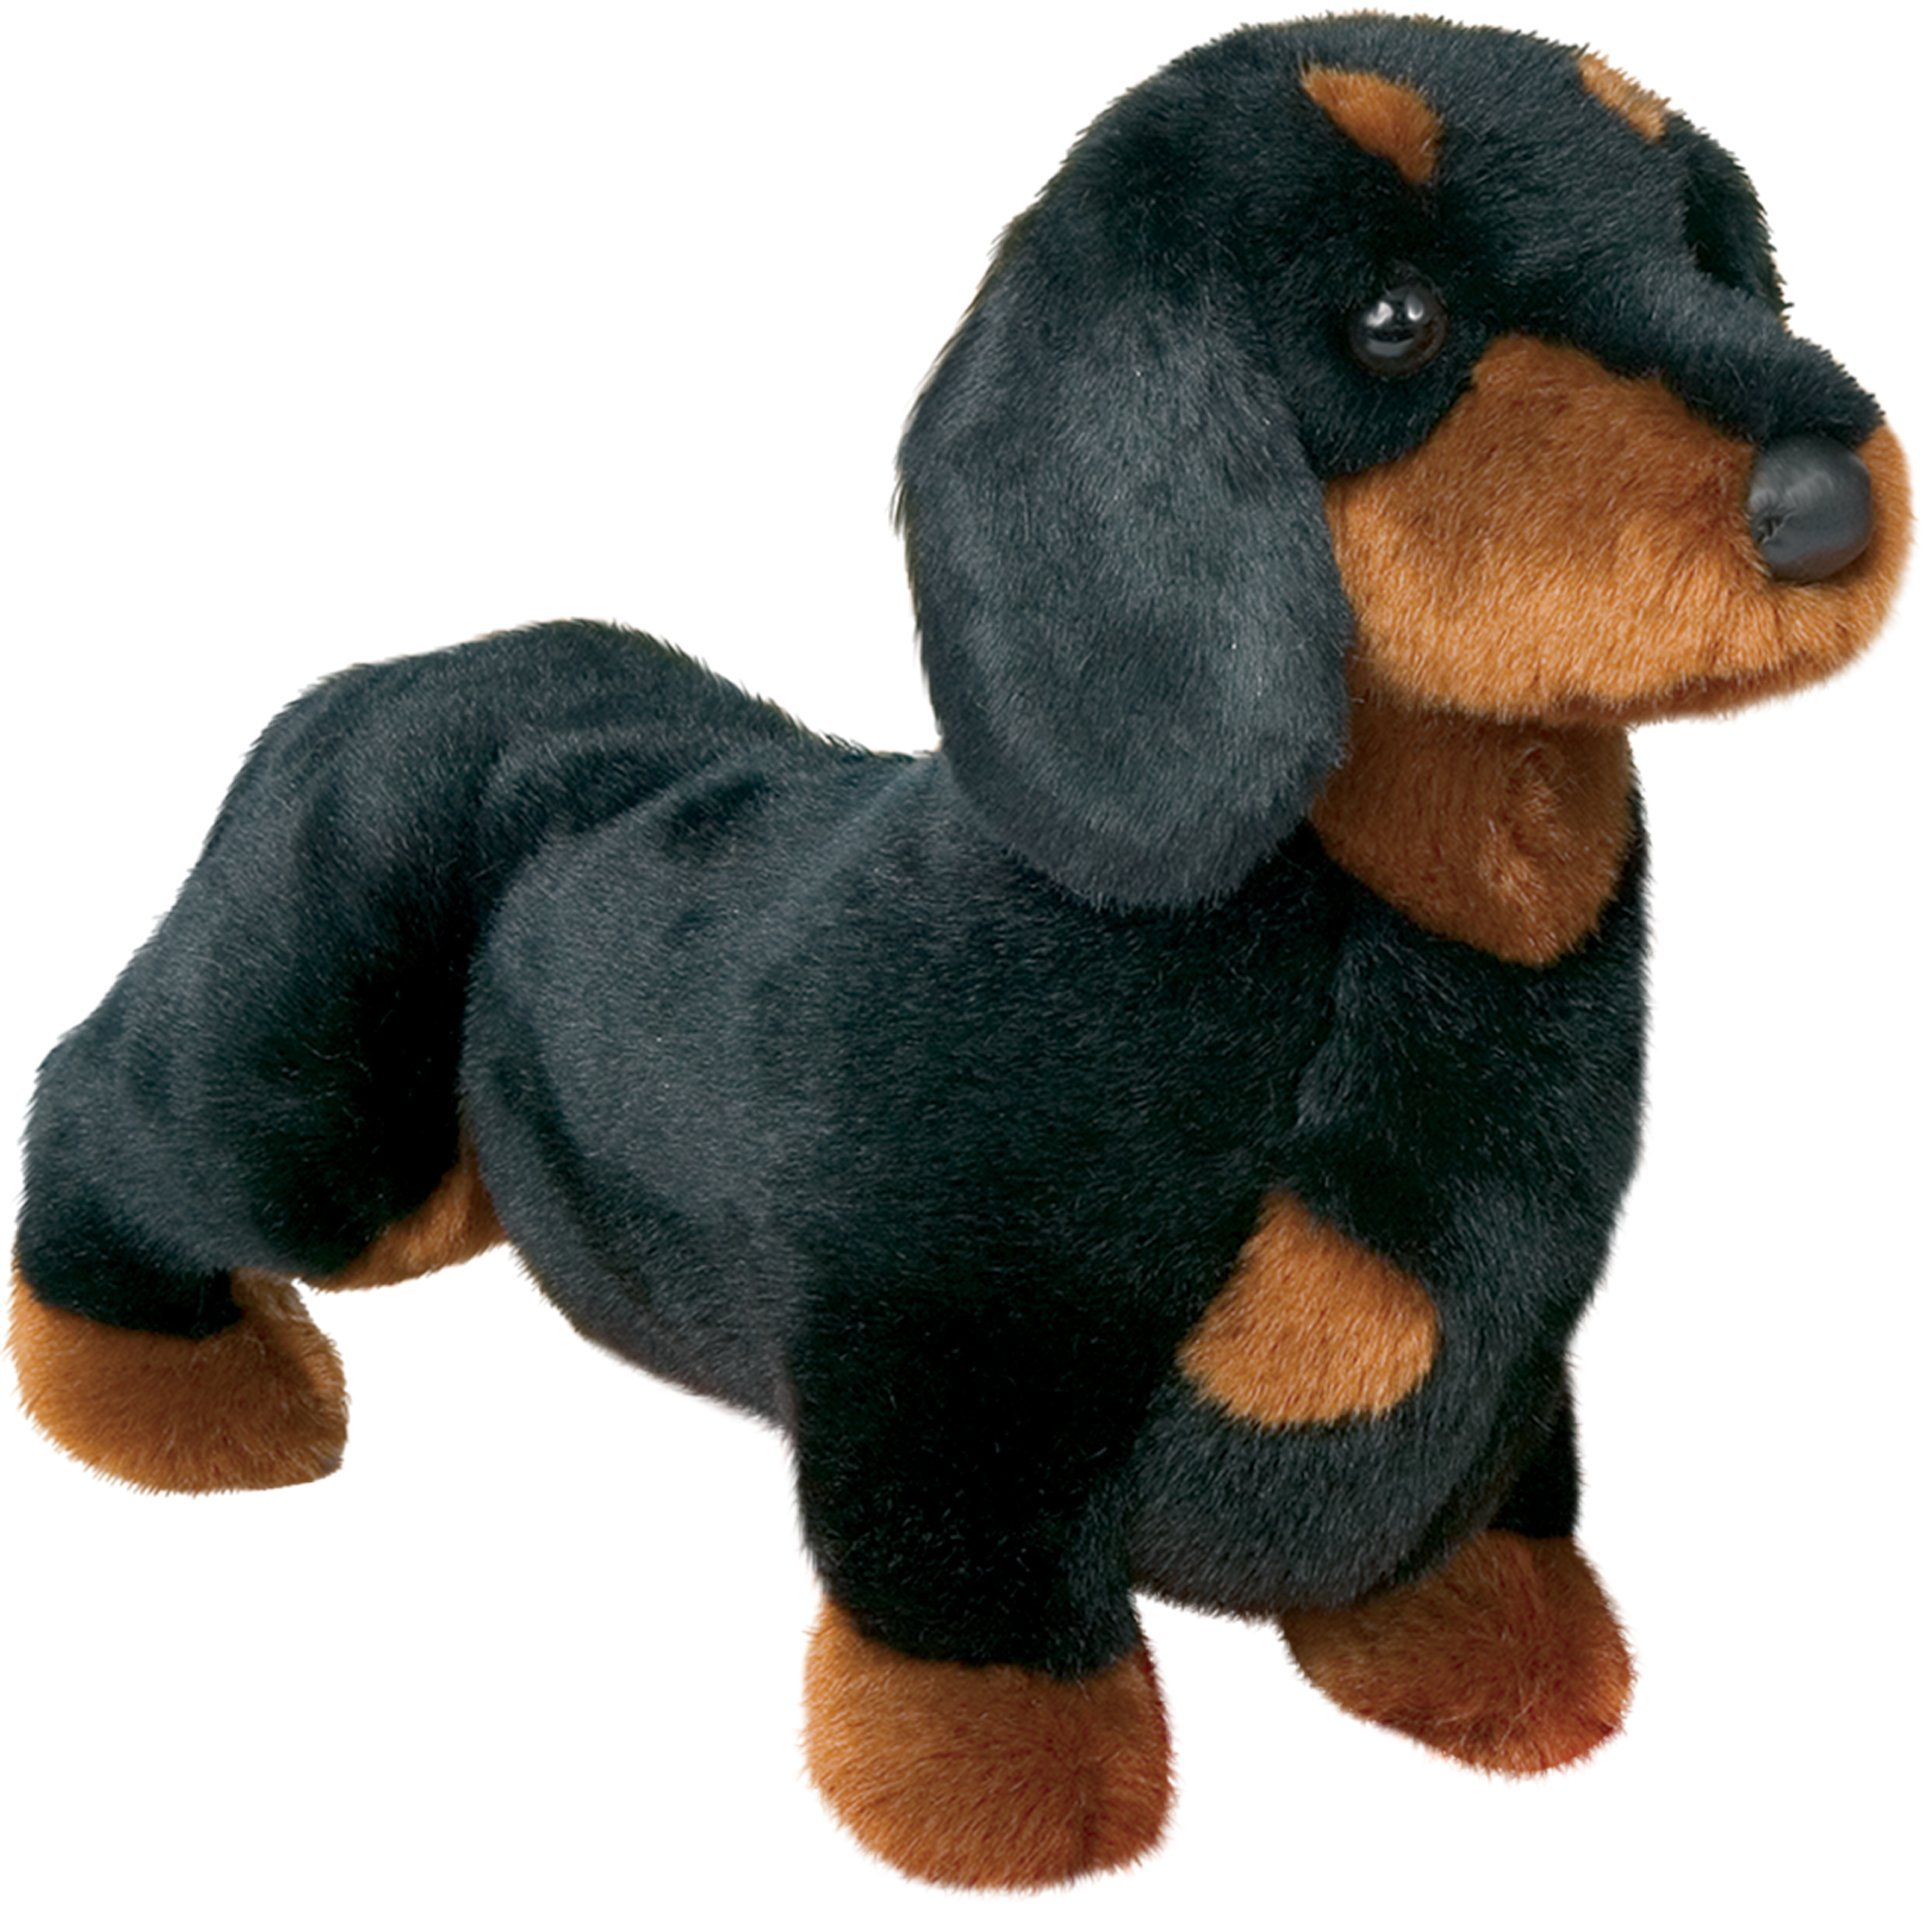 Stuffed Spats Black and Tan Dachshund Dog 14''